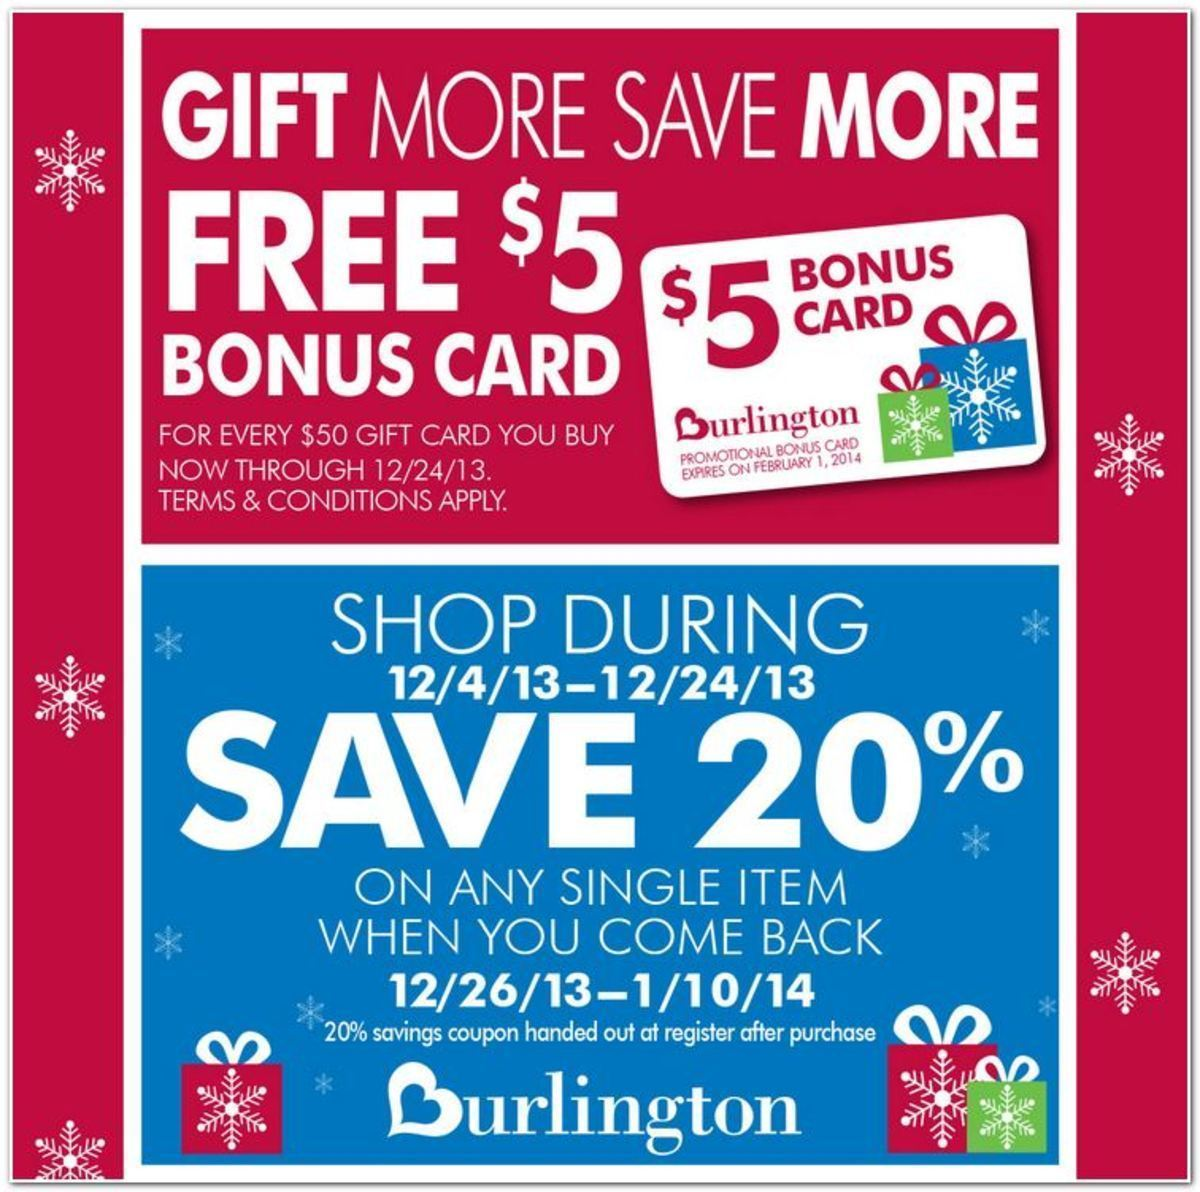 Burlington Coat Factory is a clothing and accessories retailer. It offers many exclusive products such as Luxury Linen and Baby Depot and has diversified its business into furniture and home accessories. Customers like Burlington because of the economical prices of its products.